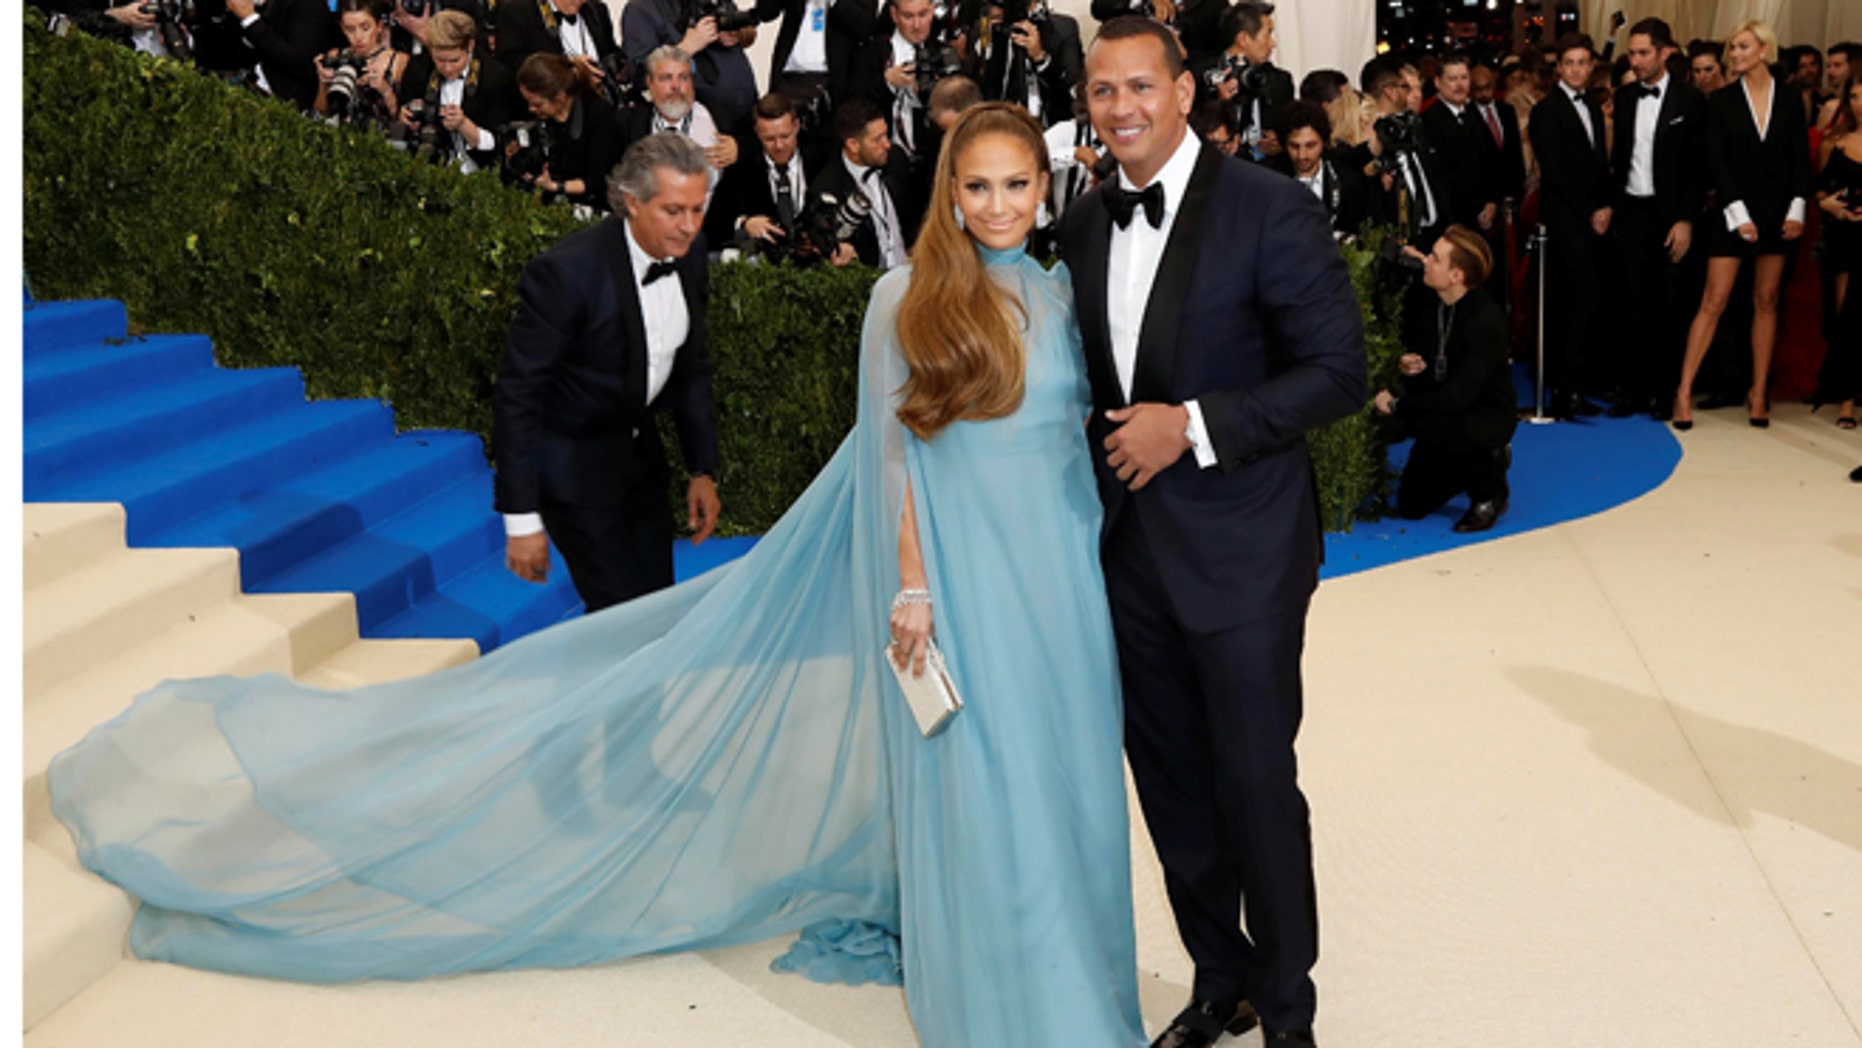 Jennifer Lopez was coy when discussing her romance with Alex Rodriguez